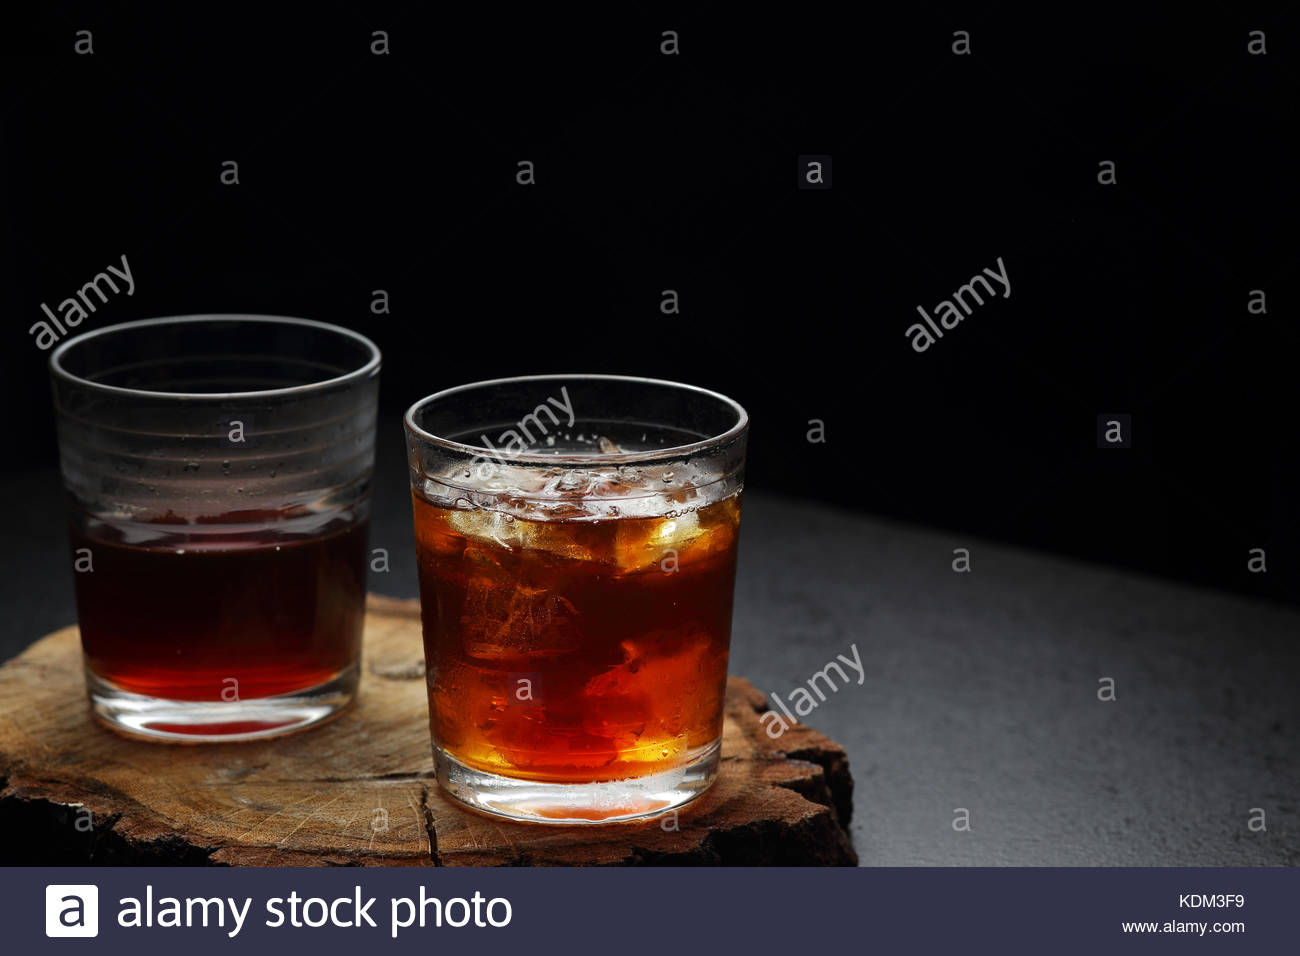 Glasses of hot and cold filter coffee on a wooden board - Stock Image